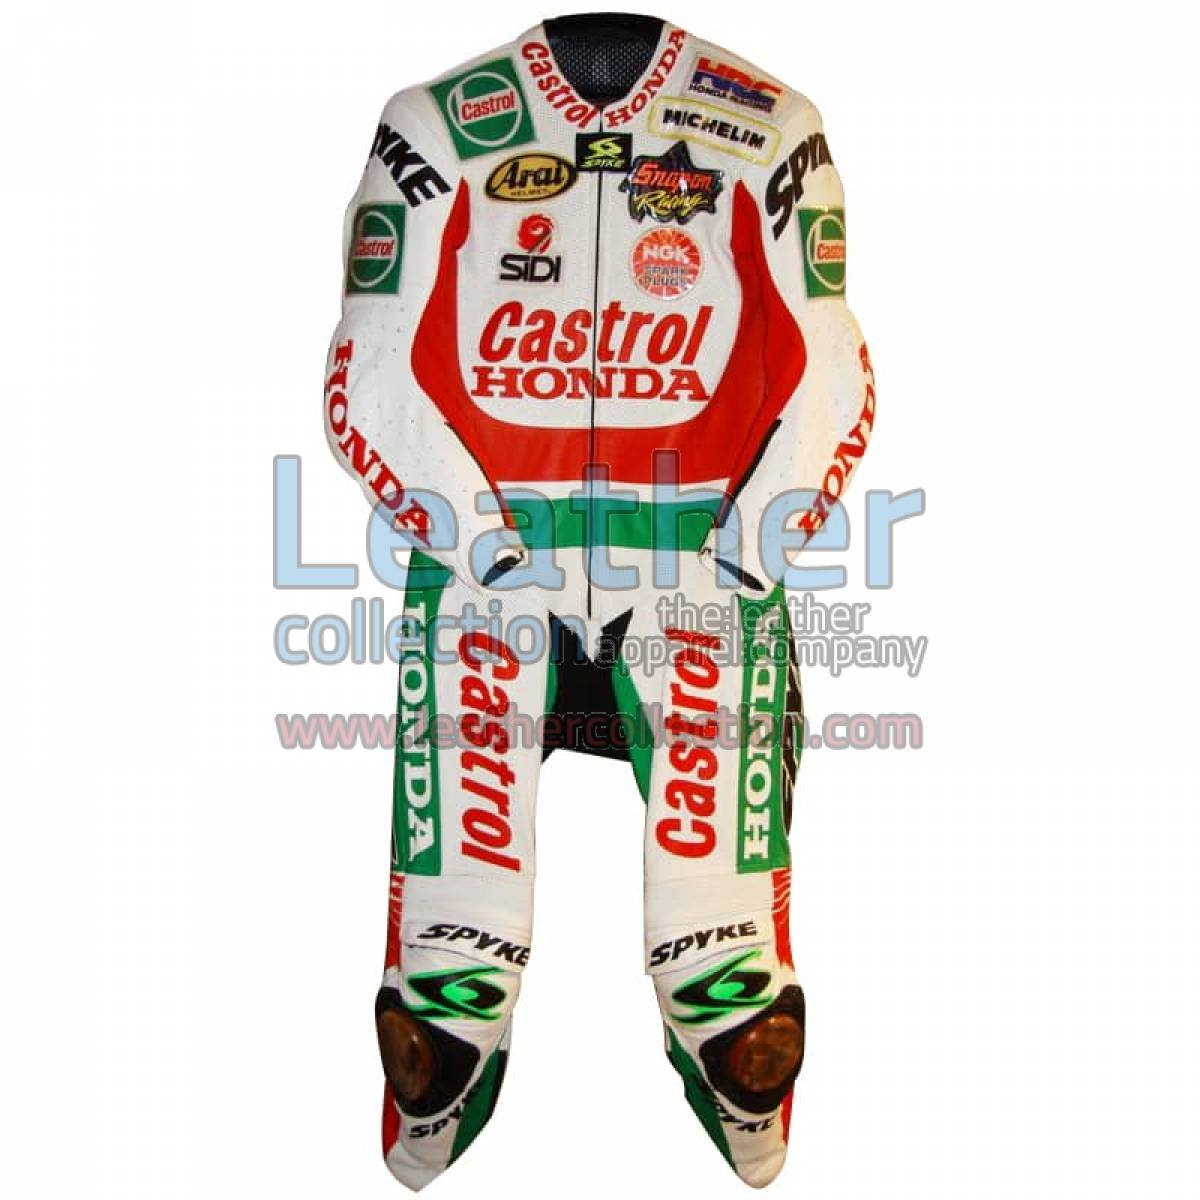 Aaron Slight 1997 WSBK Castrol Honda Leathers